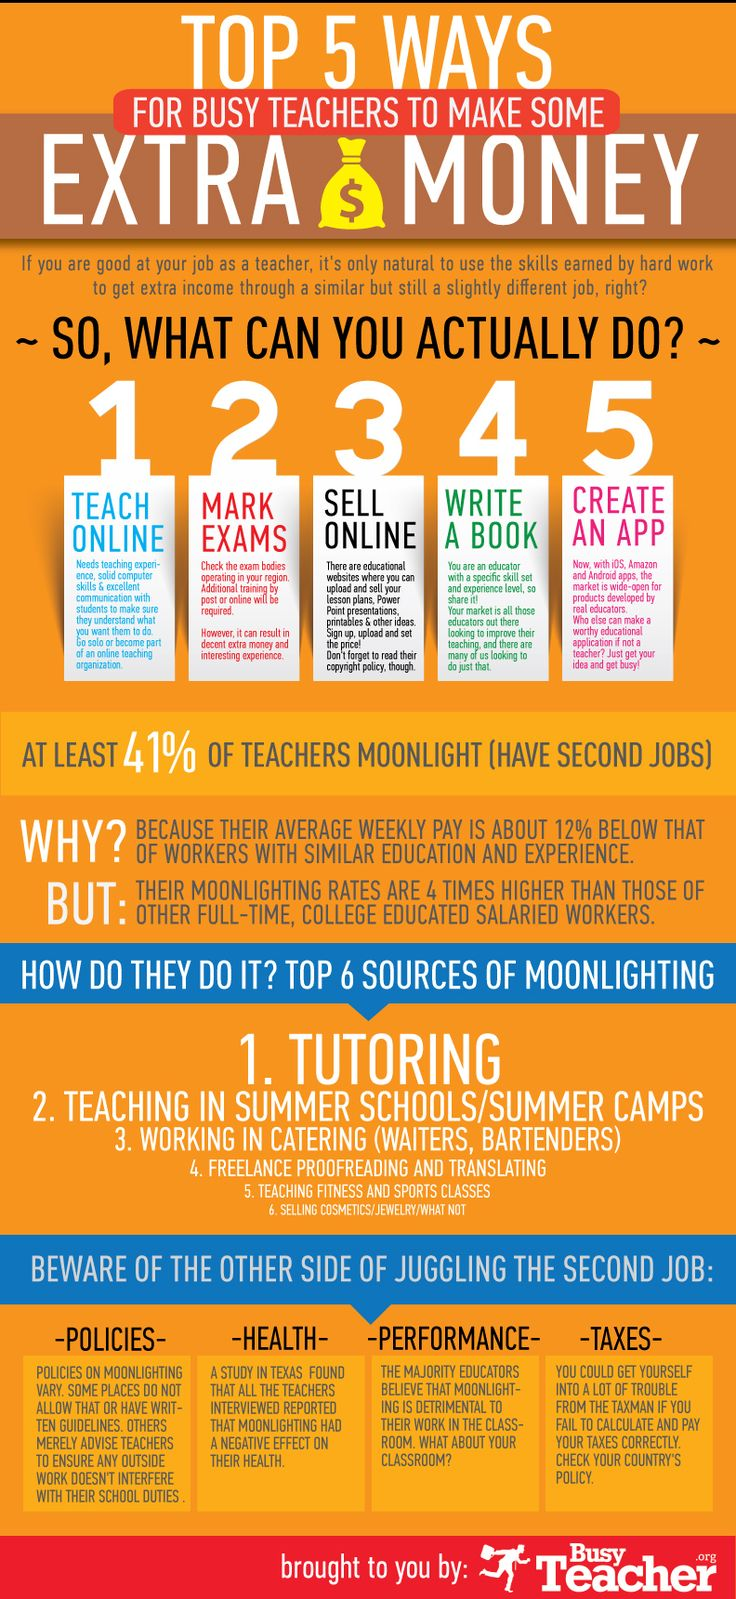 Top 5 Ways for Busy Teachers to Make Some Extra Money [INFOGRAPHIC]  Check out our new infographic & let us know what you think!